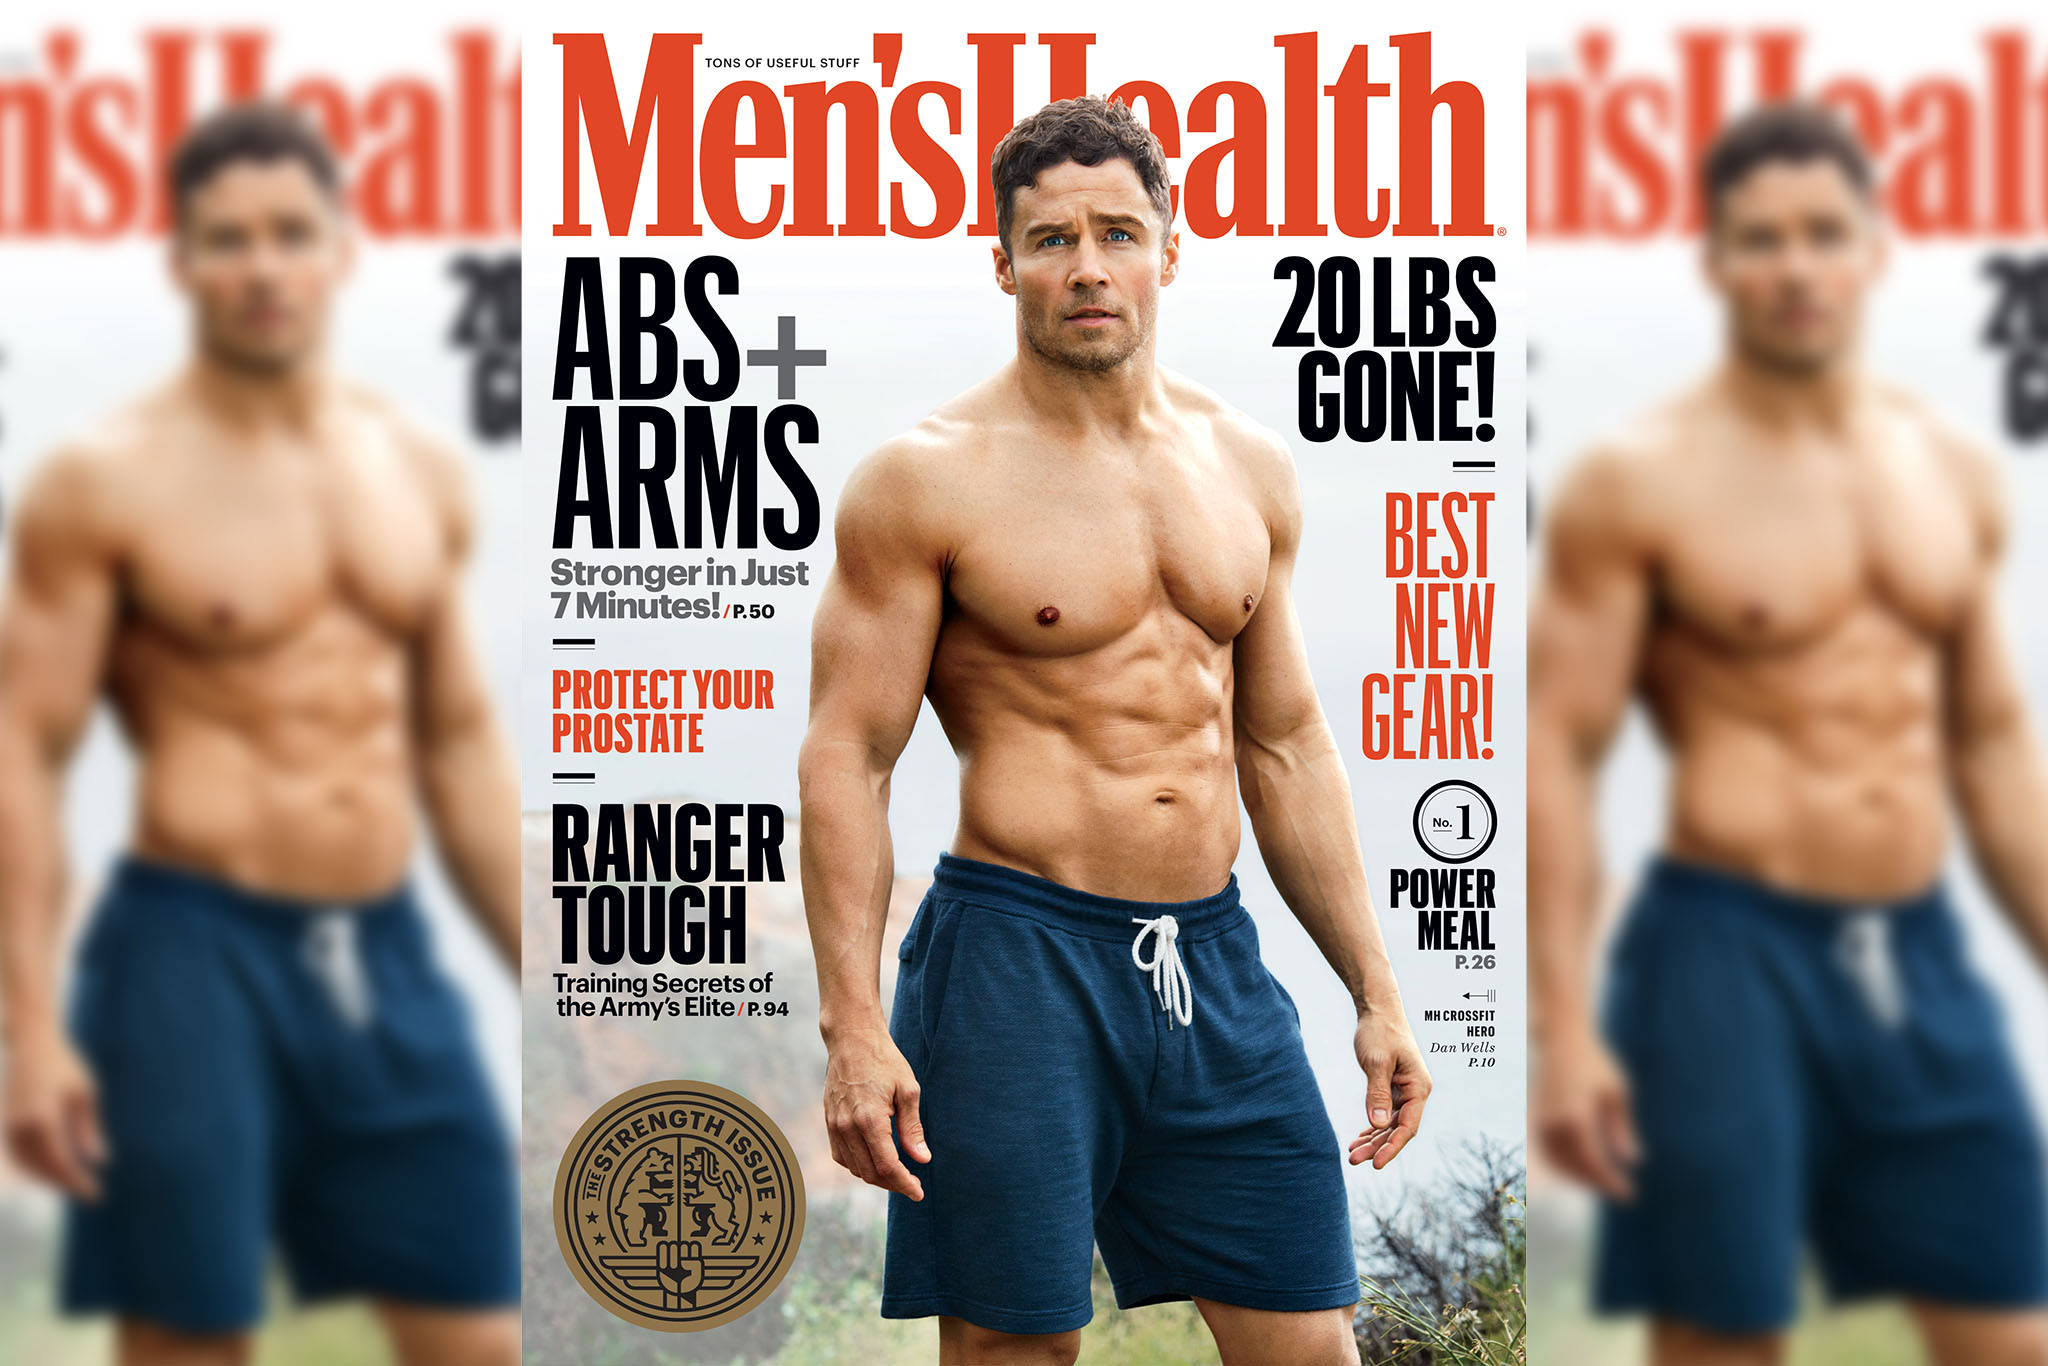 Men's Health's May 2017 cover.